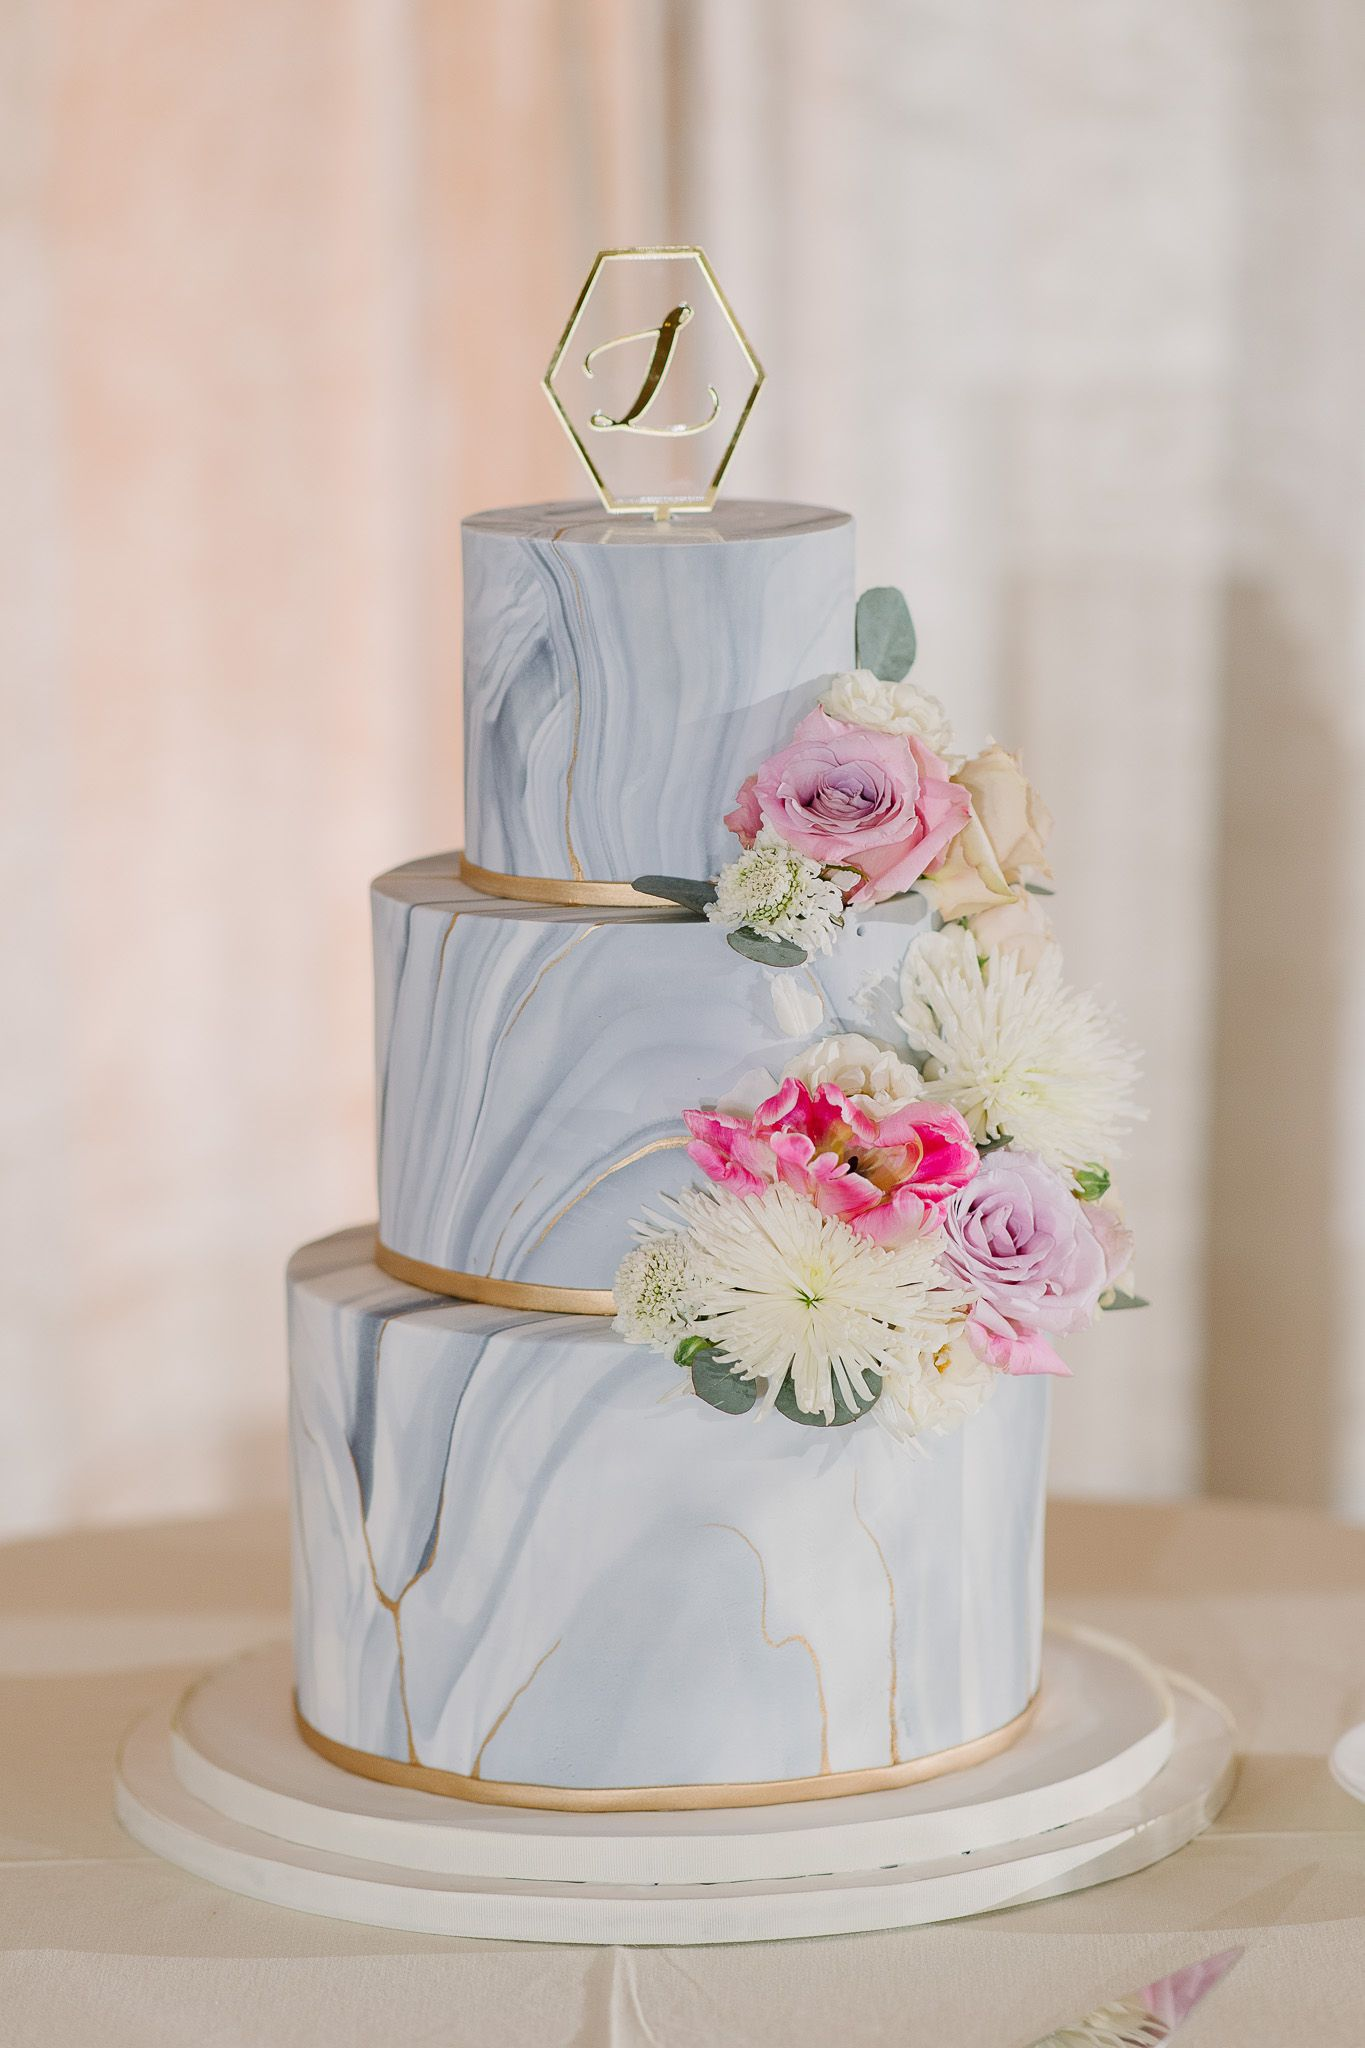 Stunning Wedding Cake With Marble Icing Tiers Dressed With Fresh